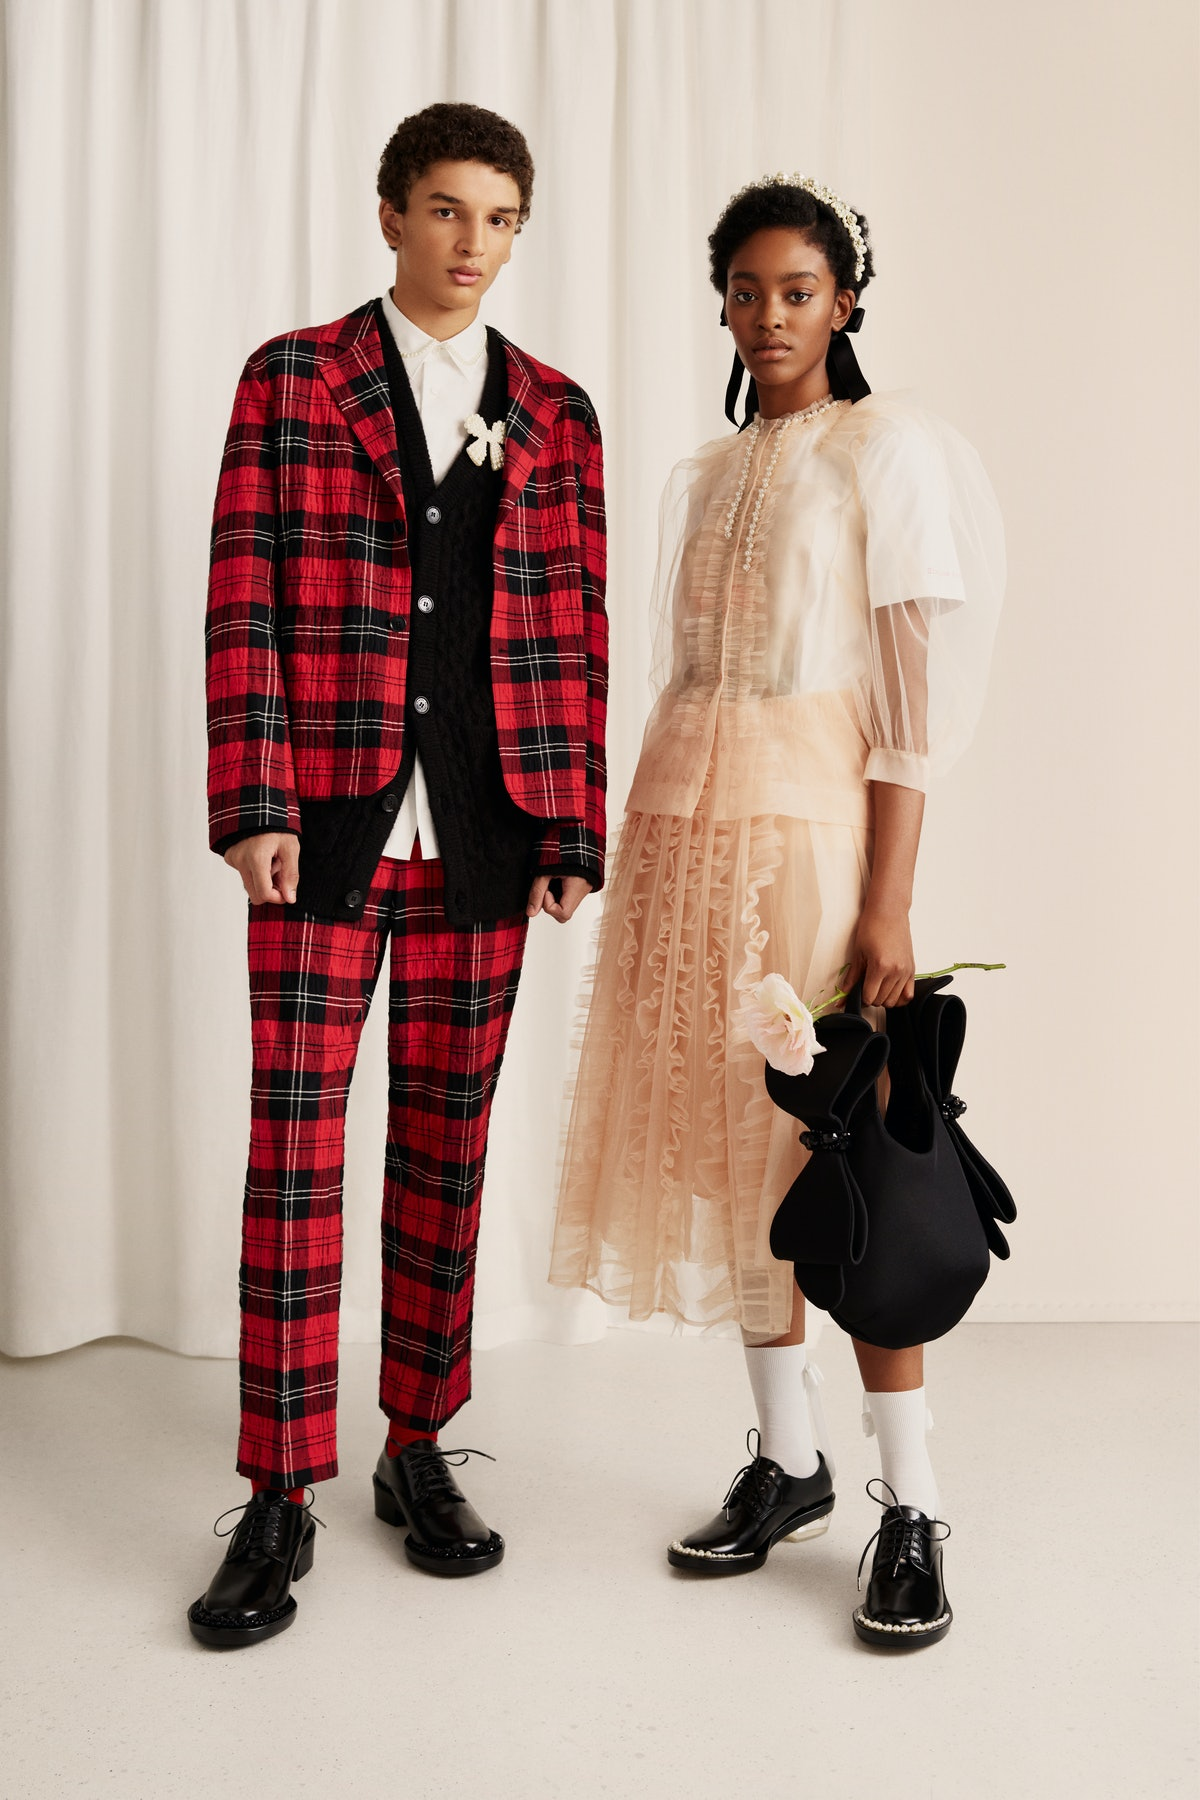 Models wearing Simone Rocha x H&M's collection.